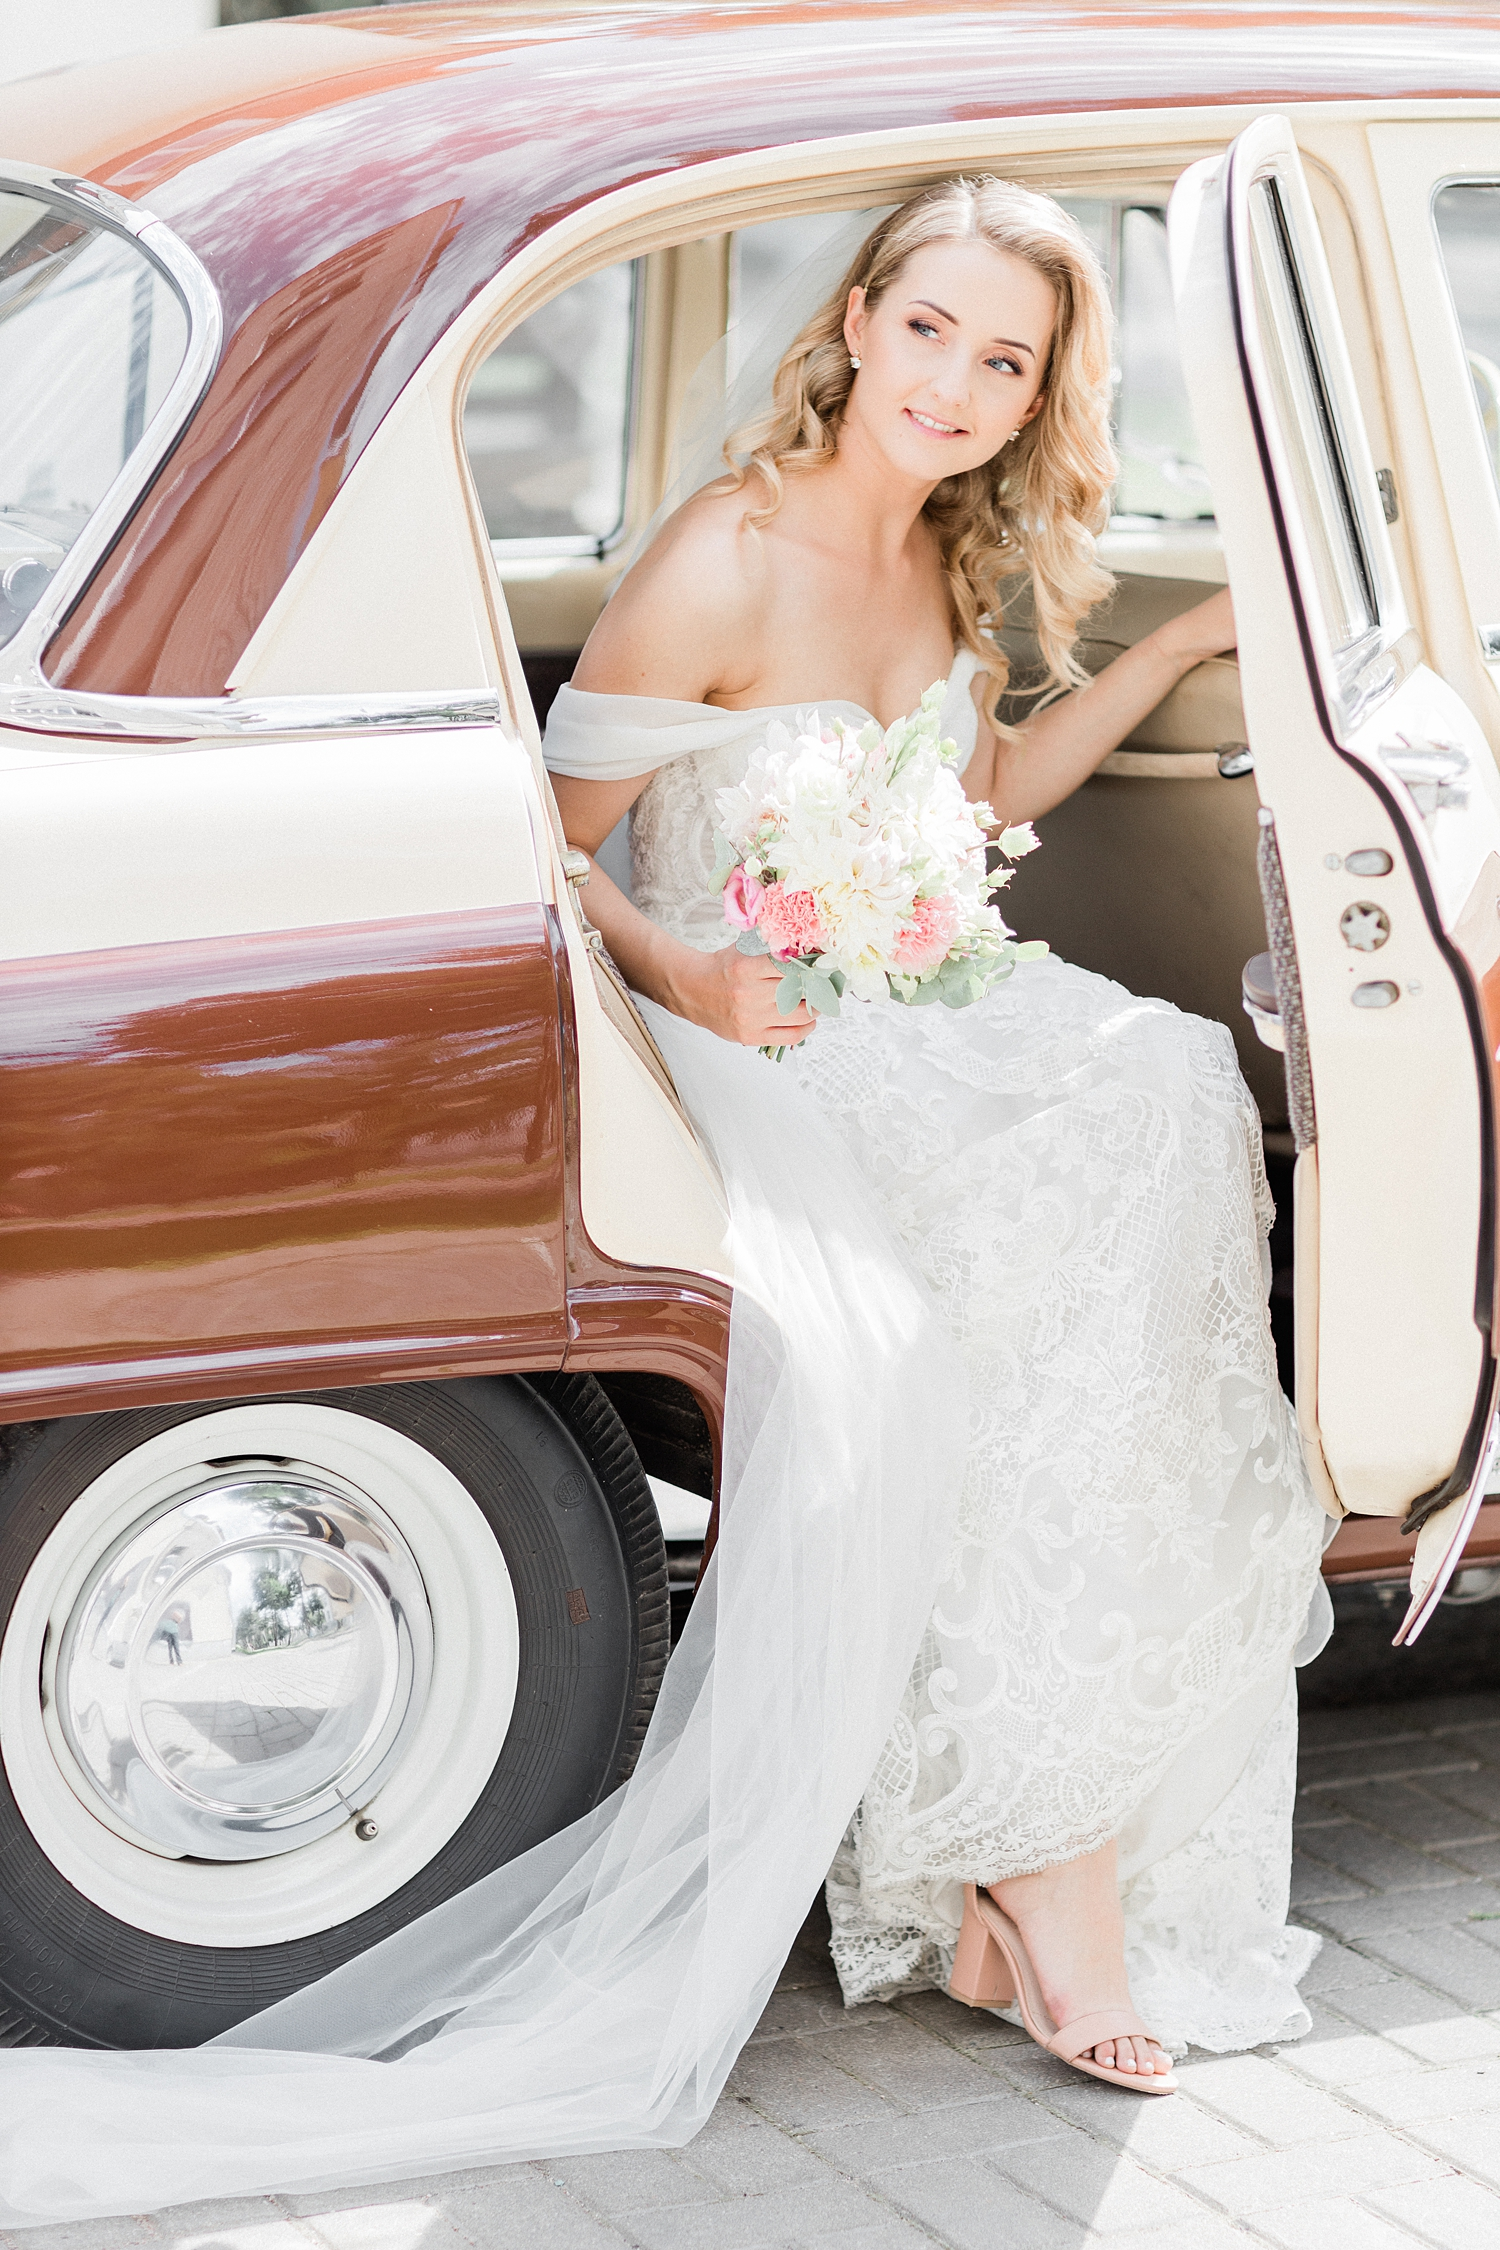 Bride with lace off-shoulder gown arrives in vintage car - photo by Jurgita Lukos Photography